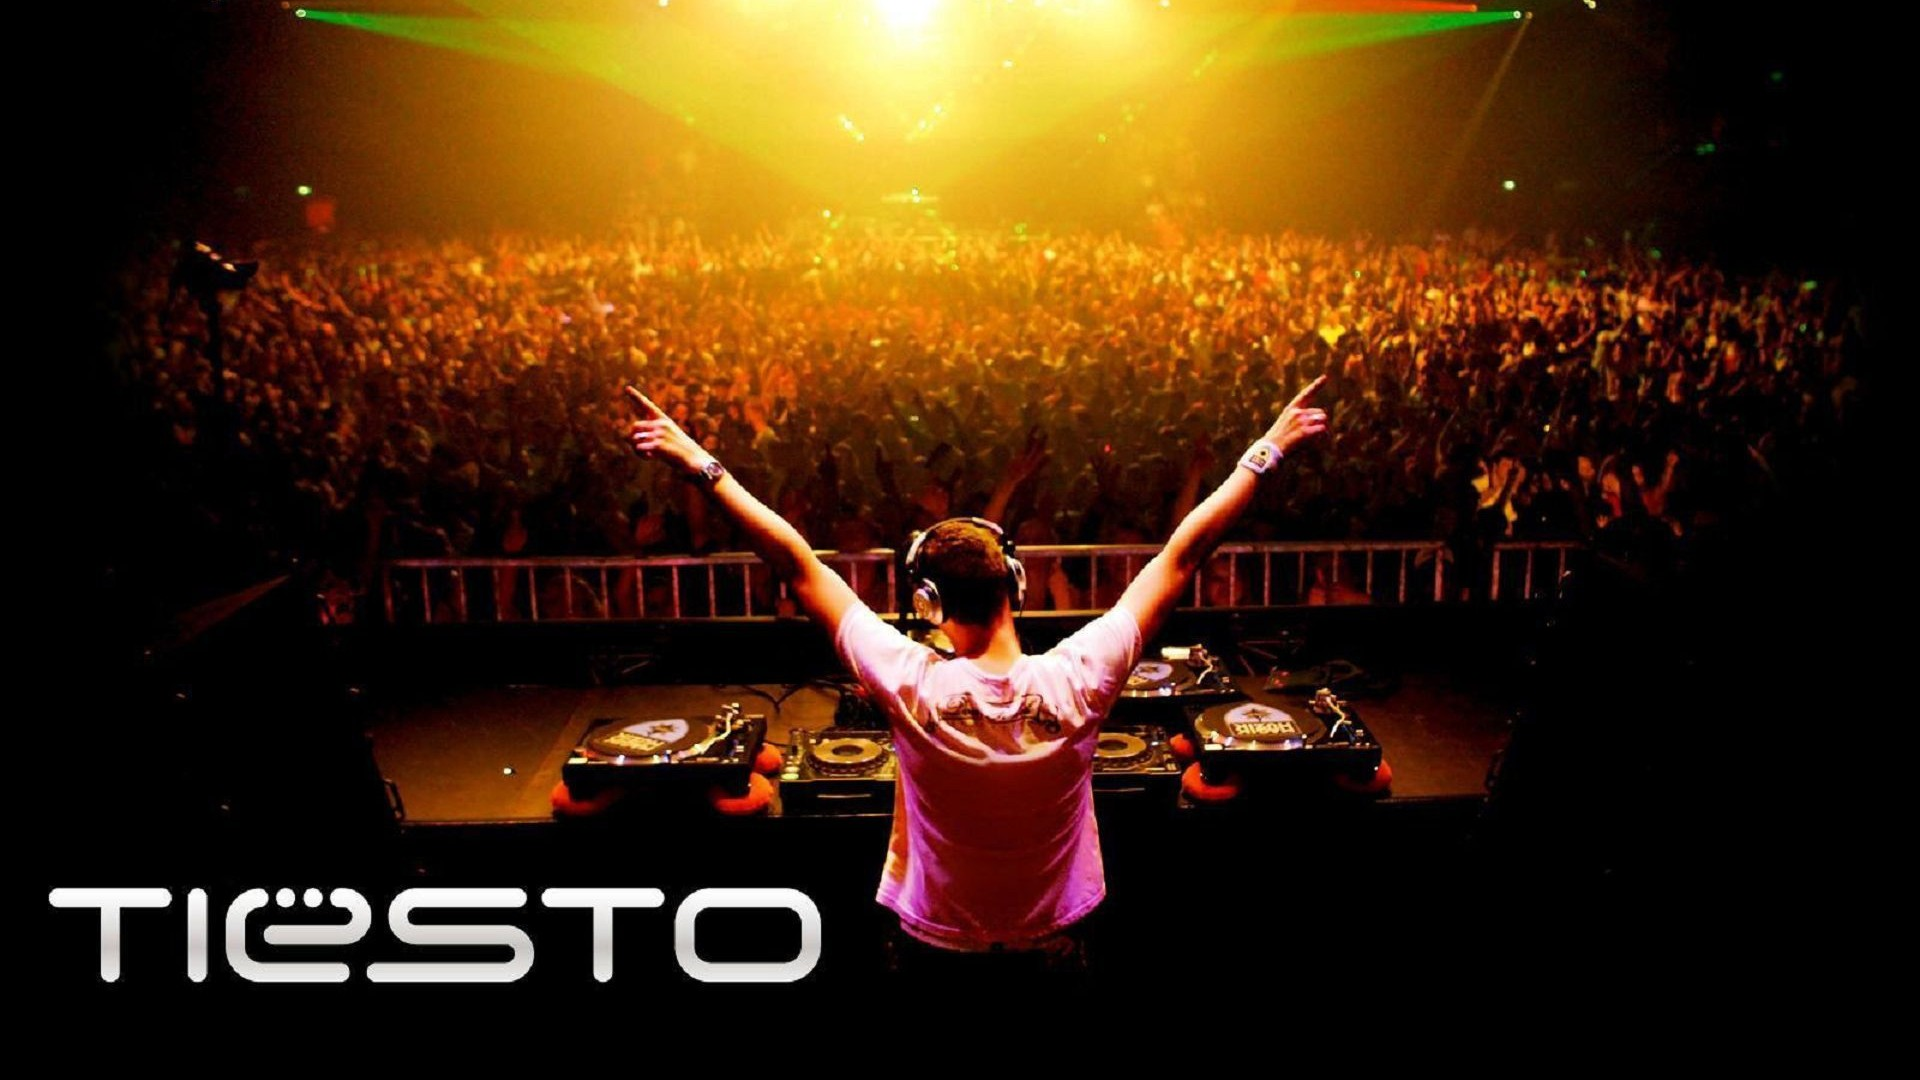 Tiesto  Trance  Dj  Tiesto  HD Wallpaper